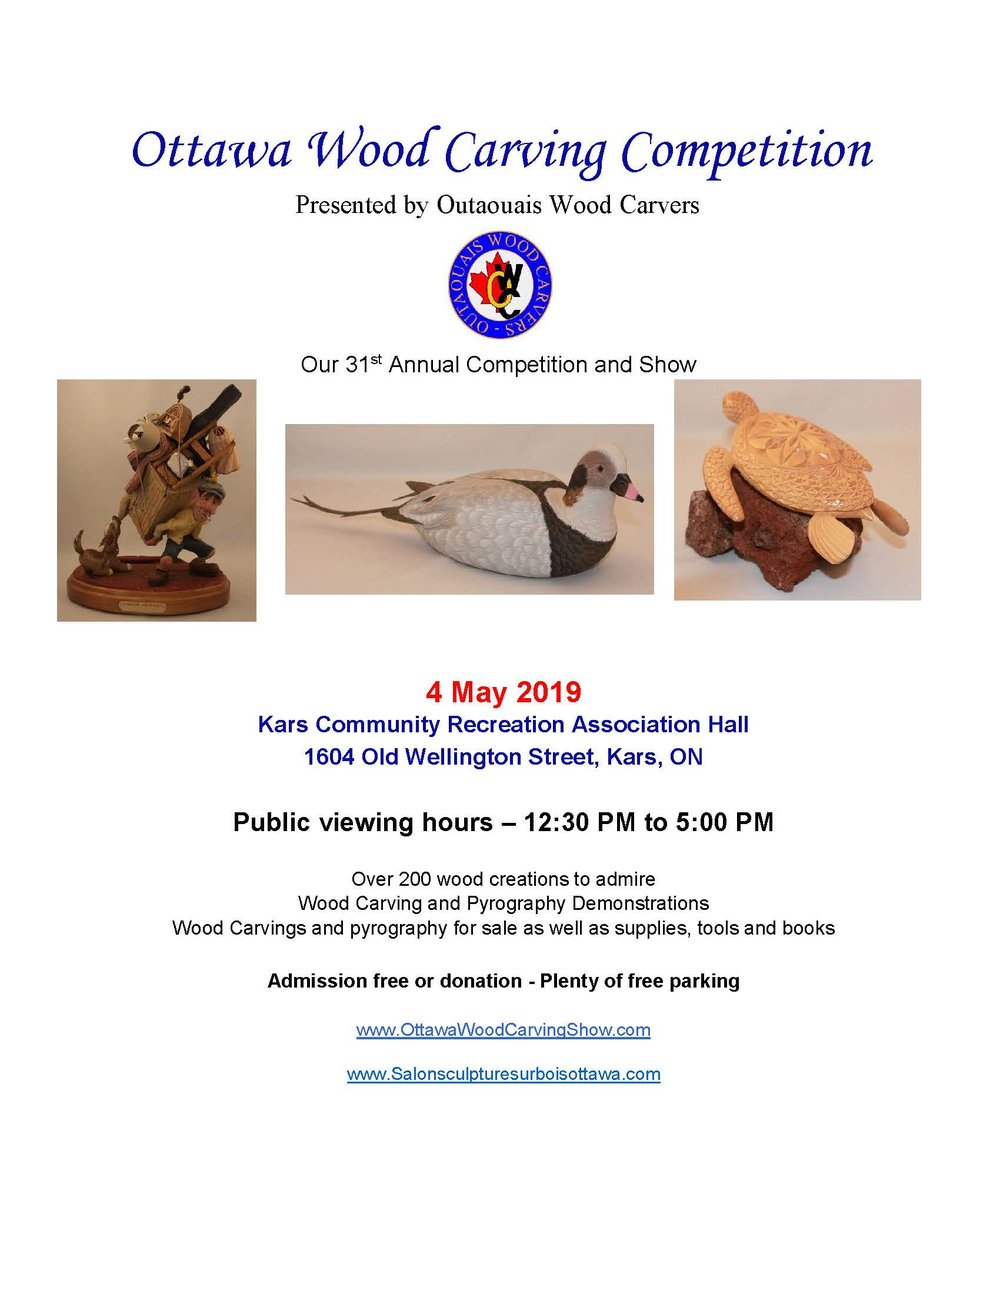 Ottawa Wood Carving Competition  31st Poster_Final_1.jpg